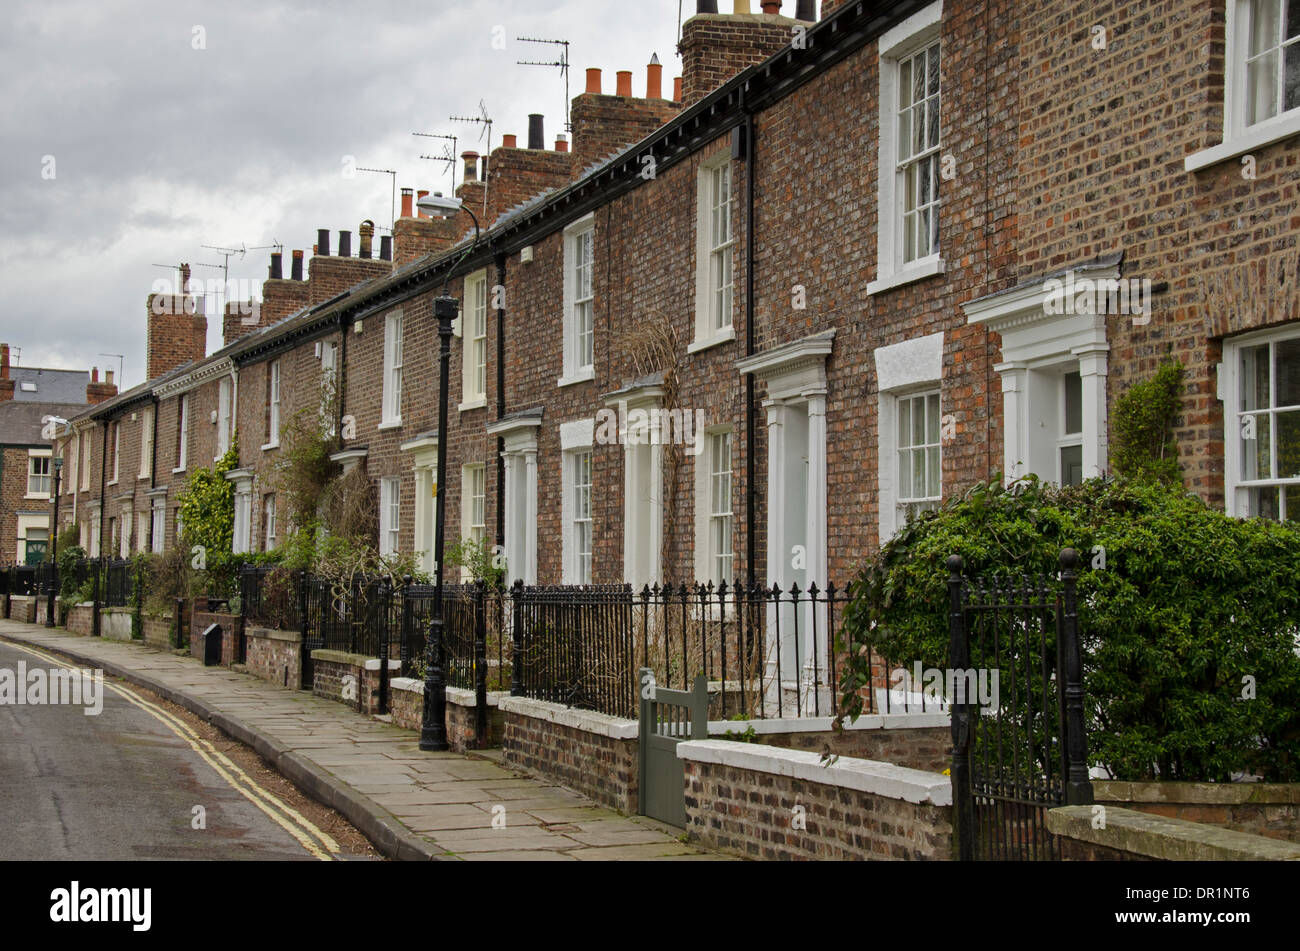 Attractive Grade 2 listed Victorian terrace of houses with small front gardens & railings - Dewsbury Terrace, York, North Yorkshire, England, UK. - Stock Image